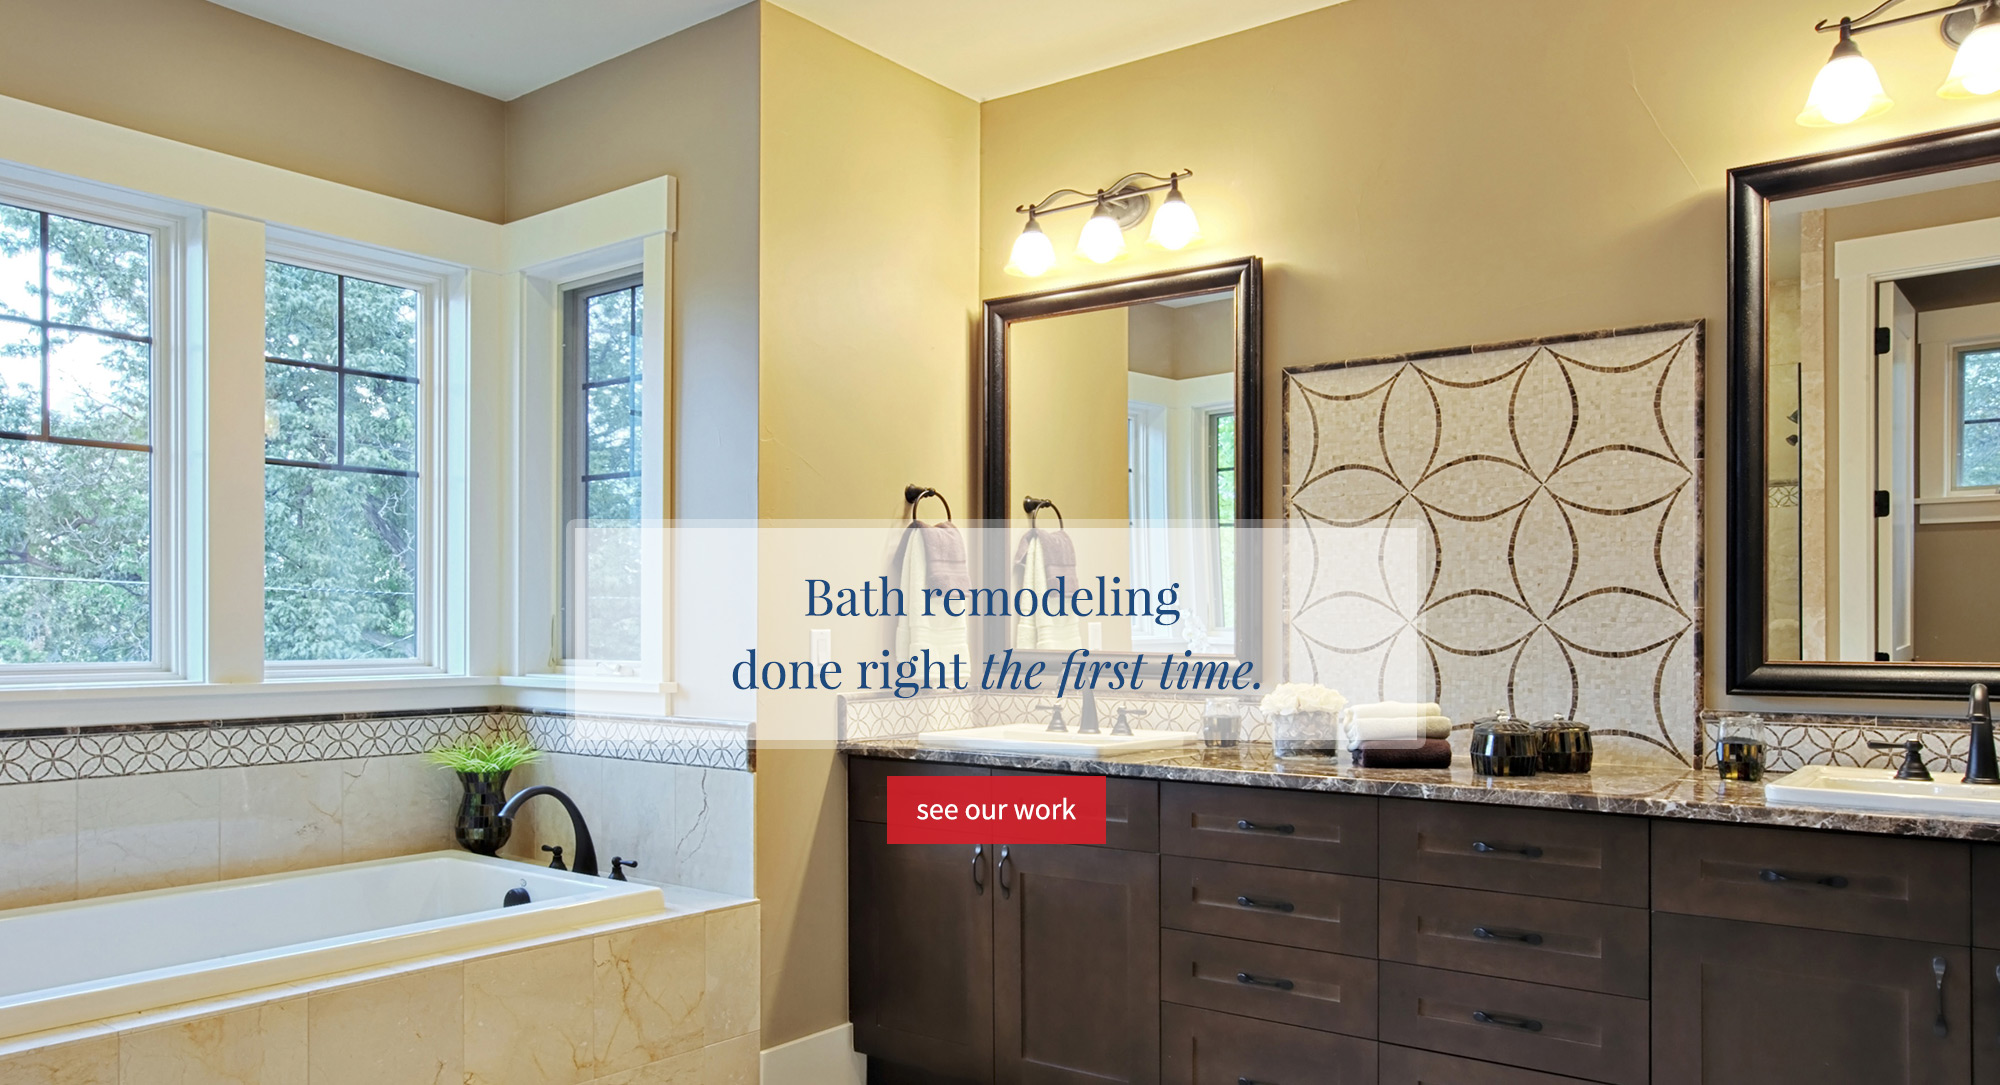 Bathroom Remodeling Indianapolis landis and landis bathroom remodeling | indianapolis, in